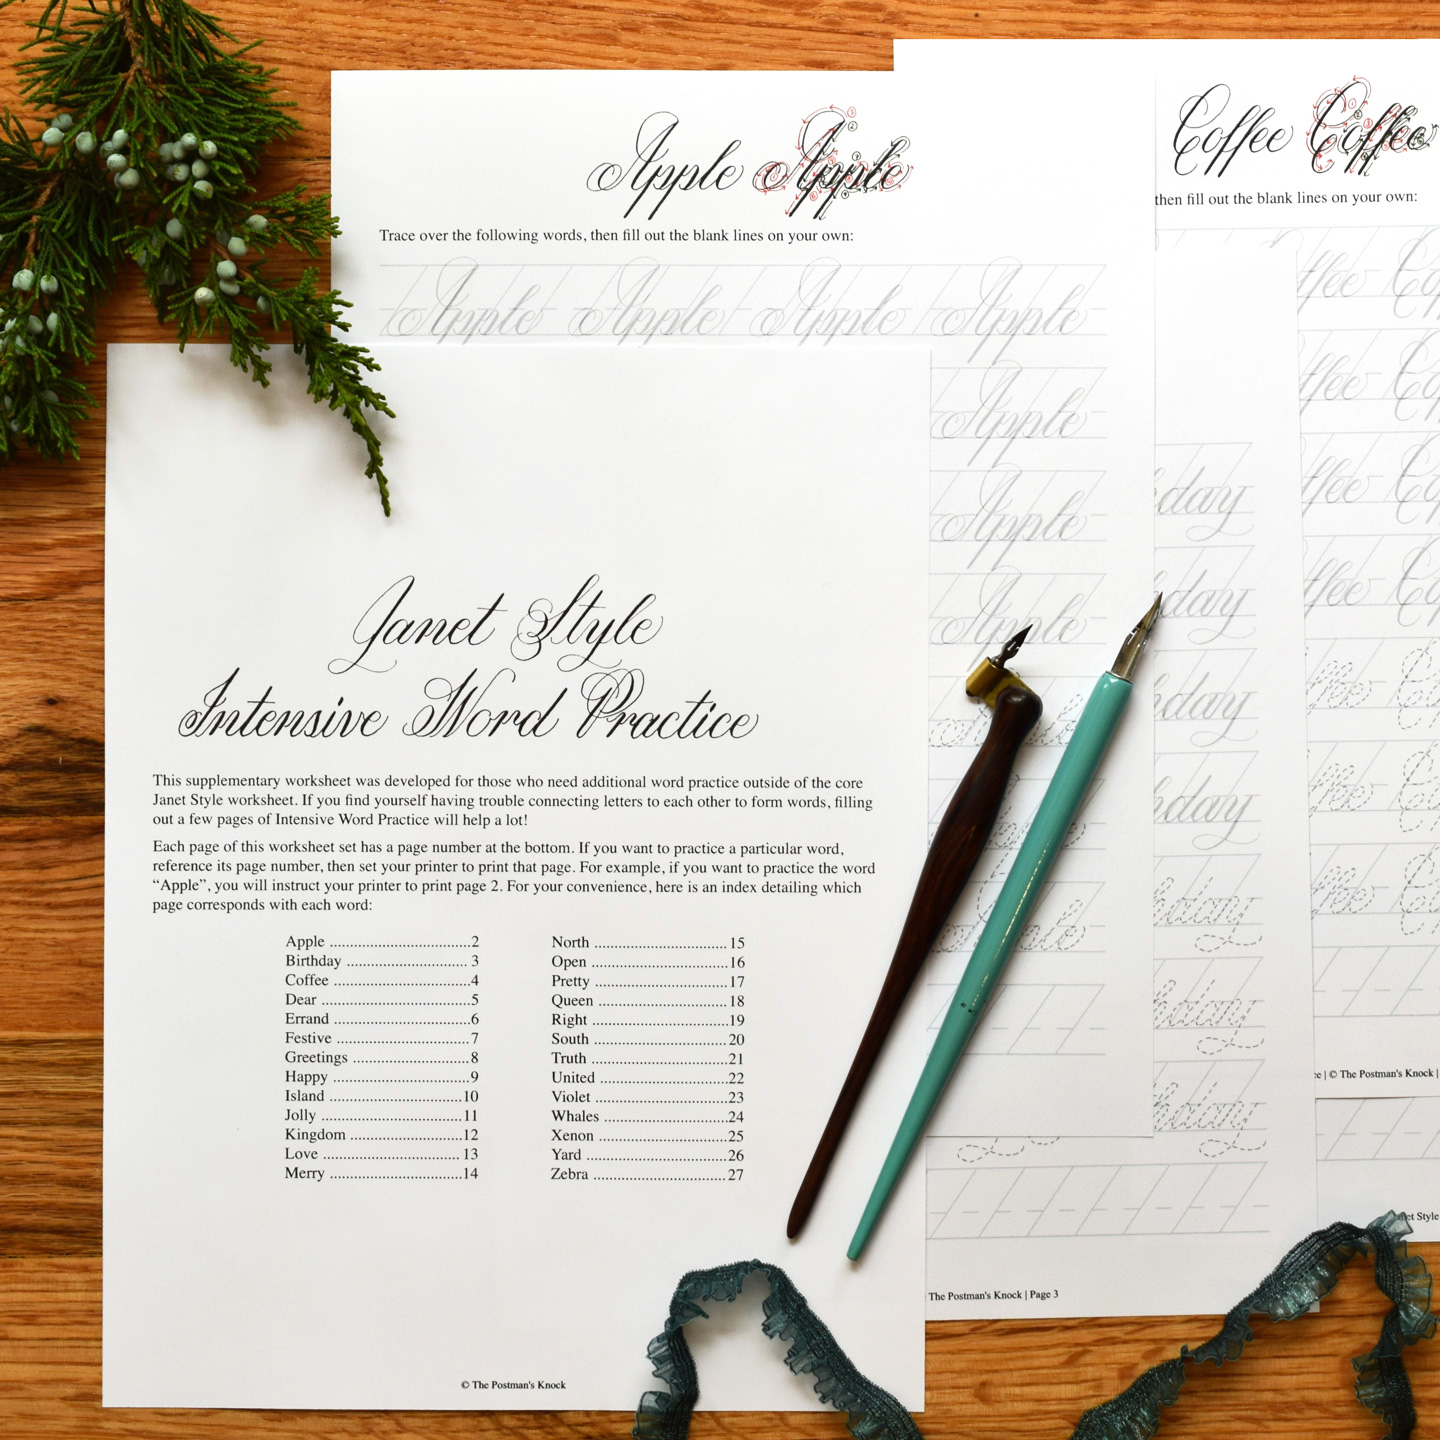 Printable Calligraphy Worksheet Set Janet Style The